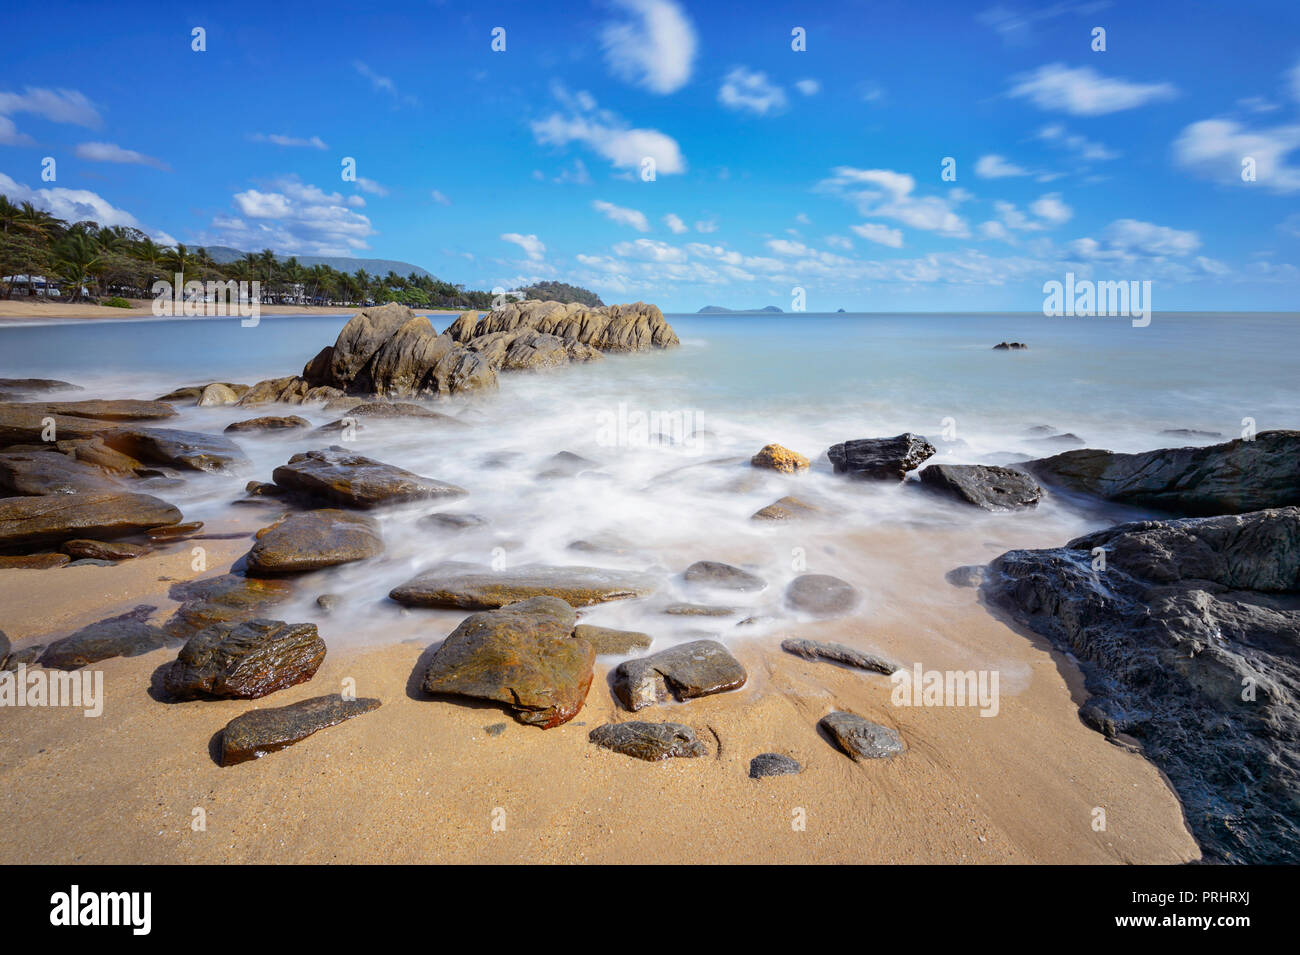 gentle-lapping-waves-motion-blur-at-scen